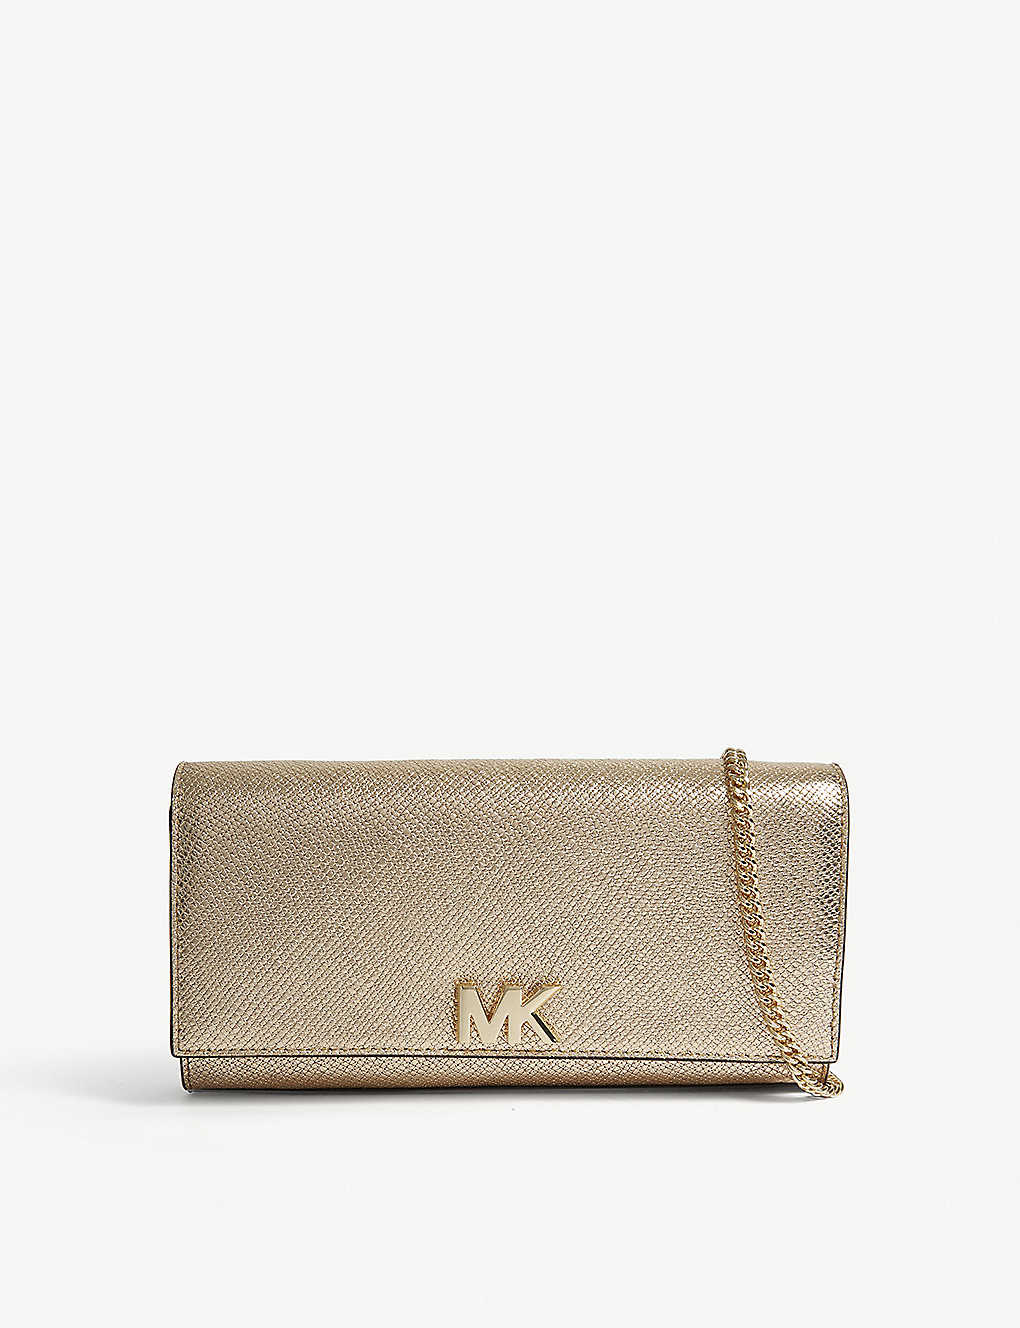 81de27ed4113 MICHAEL MICHAEL KORS - Mott metallic-leather clutch bag